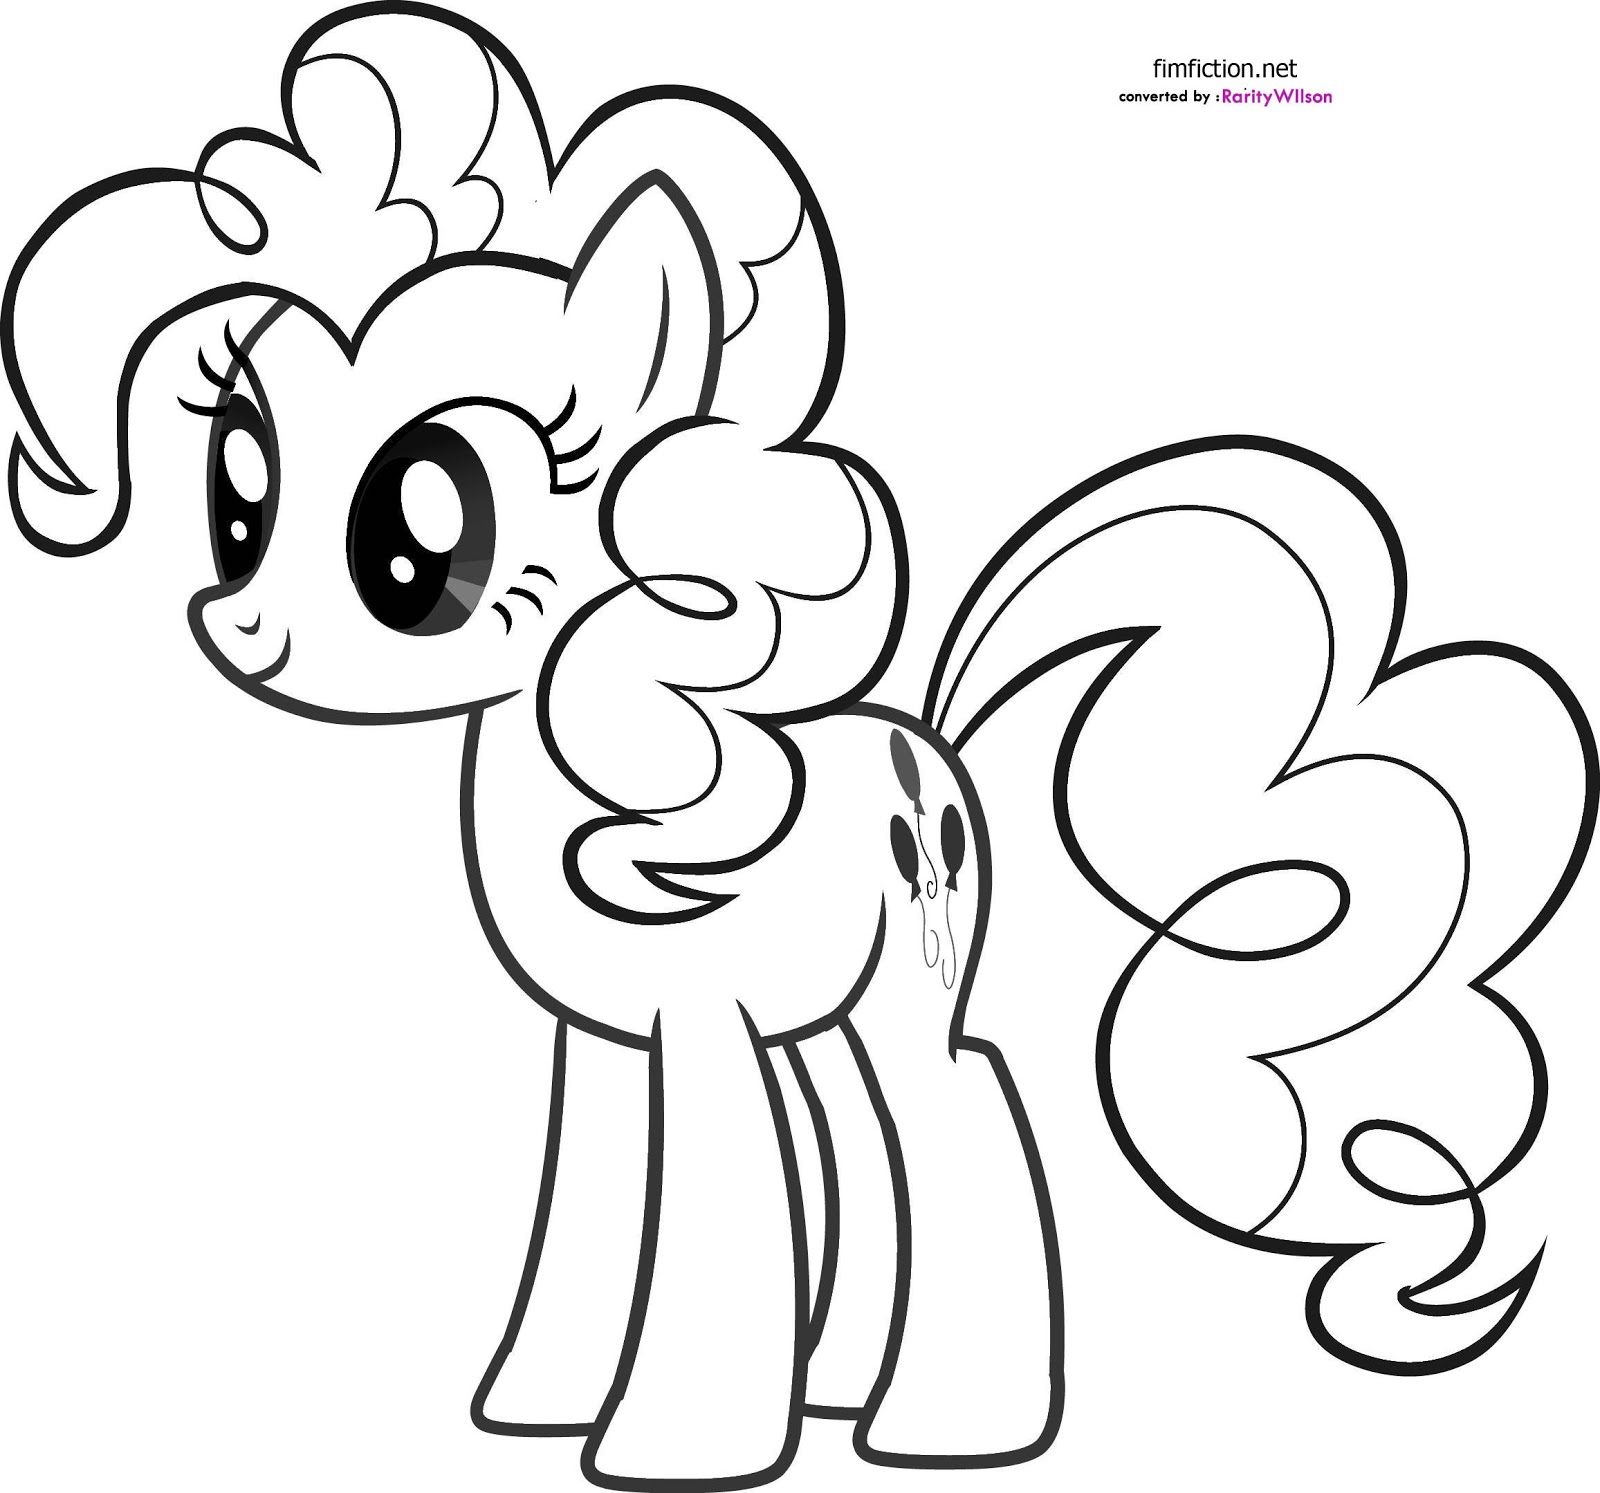 coloring pinkie pie pinkie pie coloring pages best coloring pages for kids pie pinkie coloring